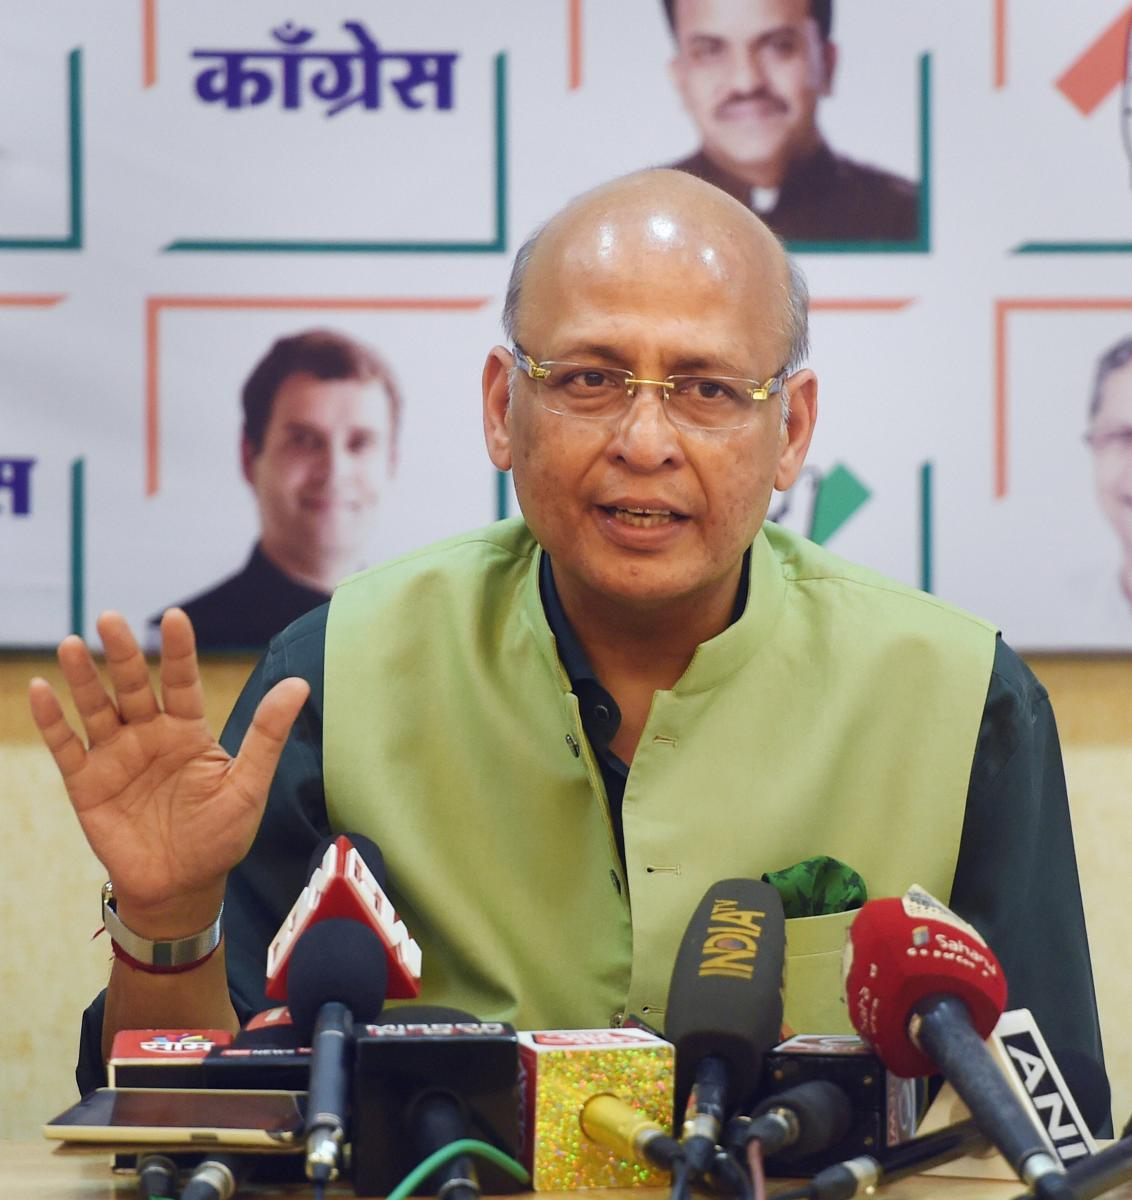 Senior congress leader Abhishek Manu Singhvi. PTI file photo